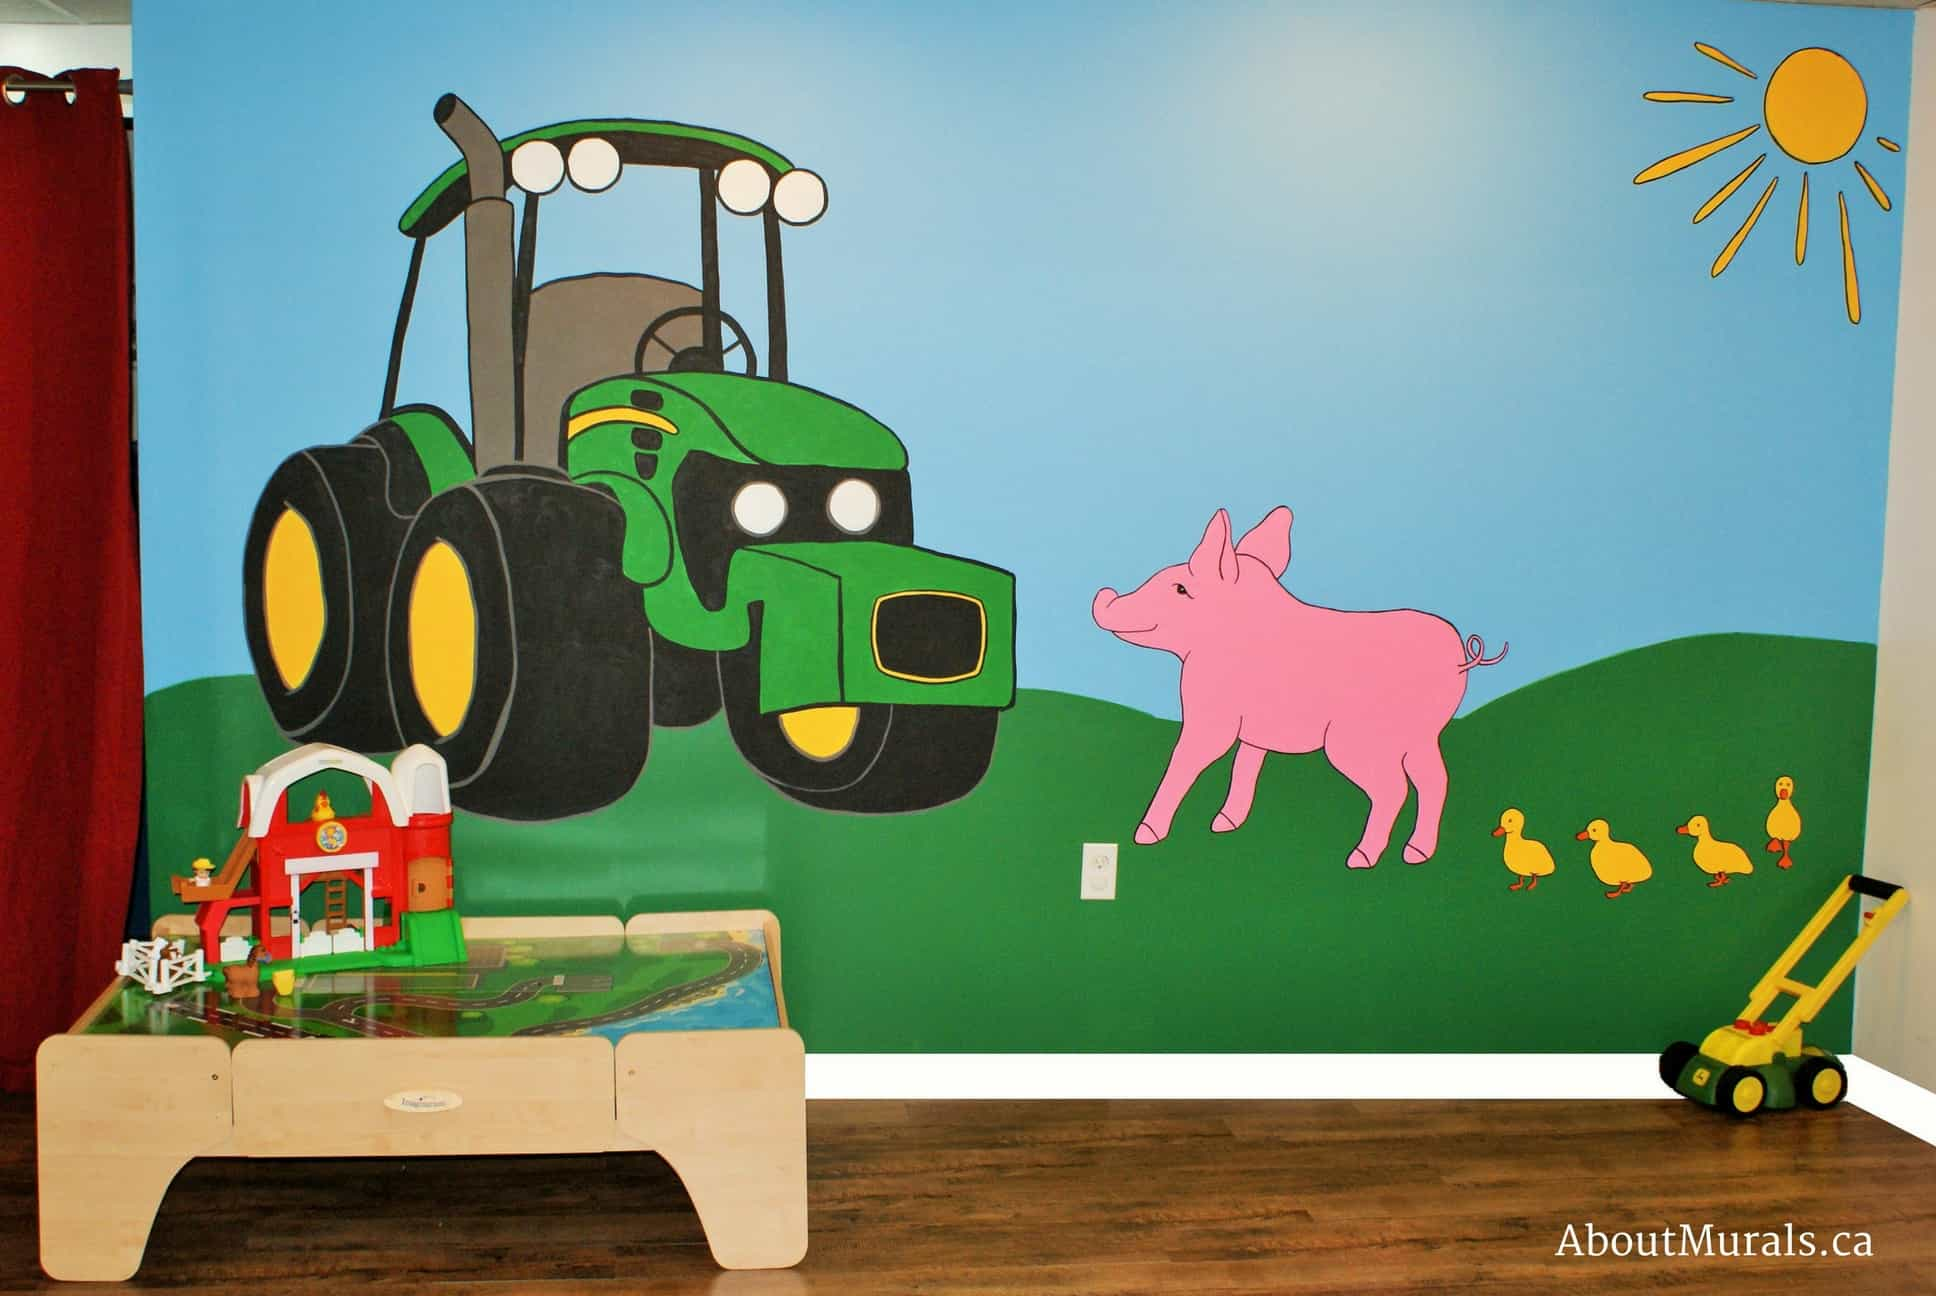 A kids wall mural featuring a John Deere tractor, a pig and ducks on a farm painted by AboutMurals.ca